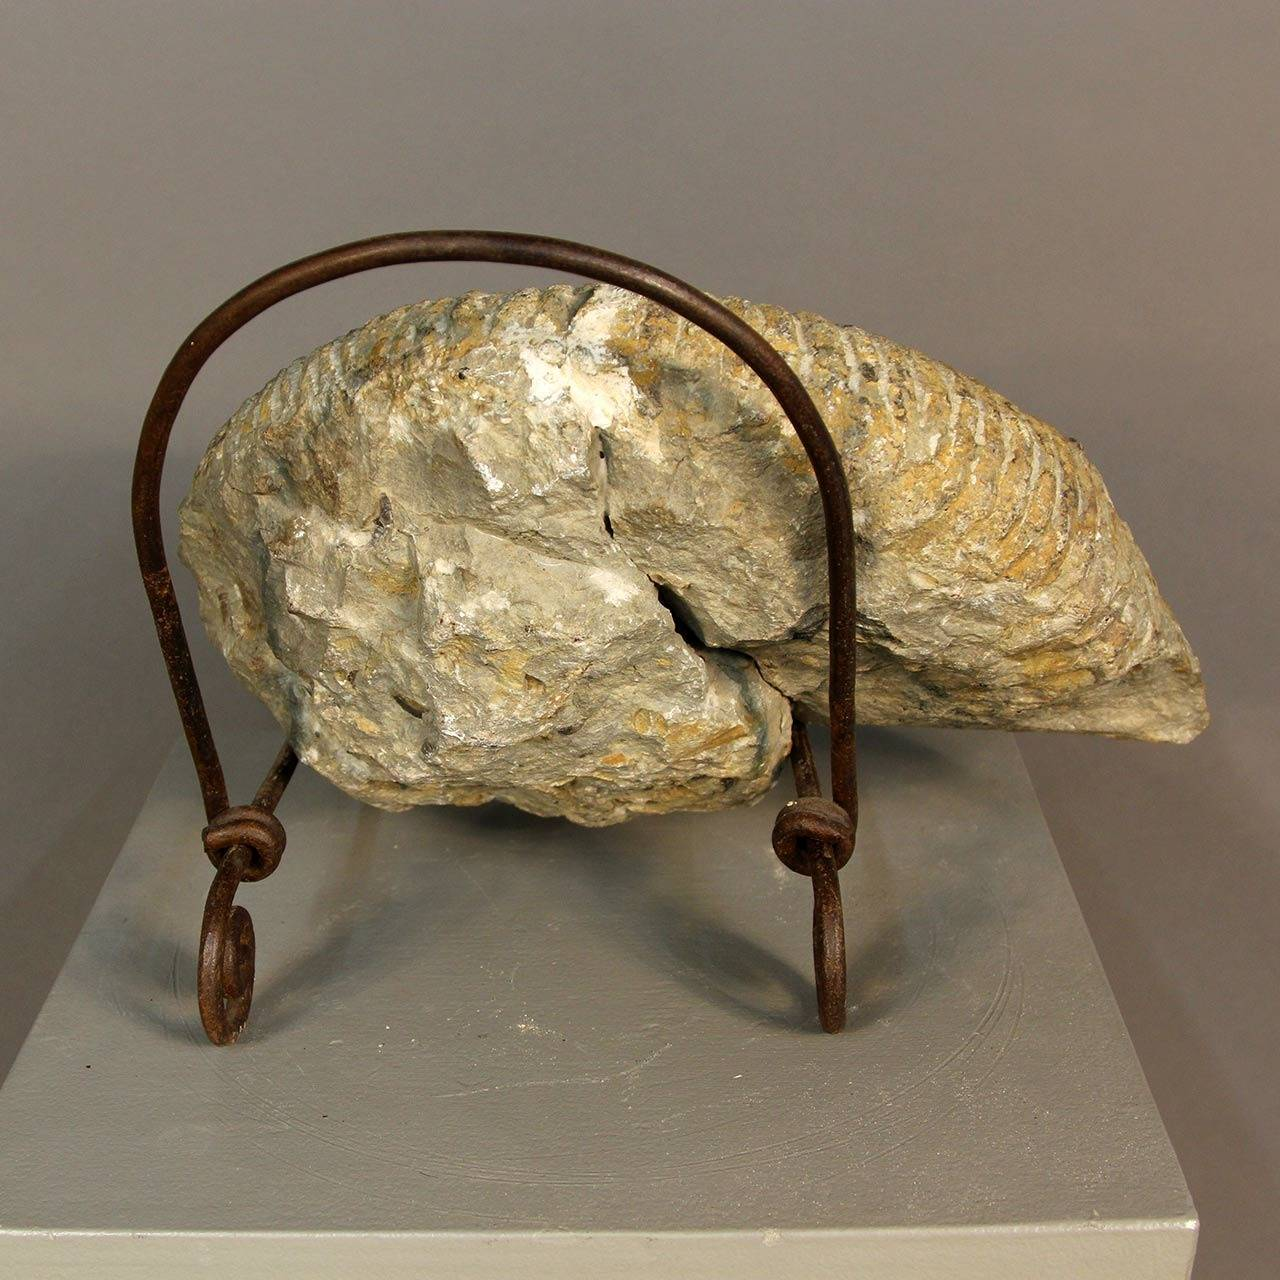 Ammonite Fossil on Stand 2